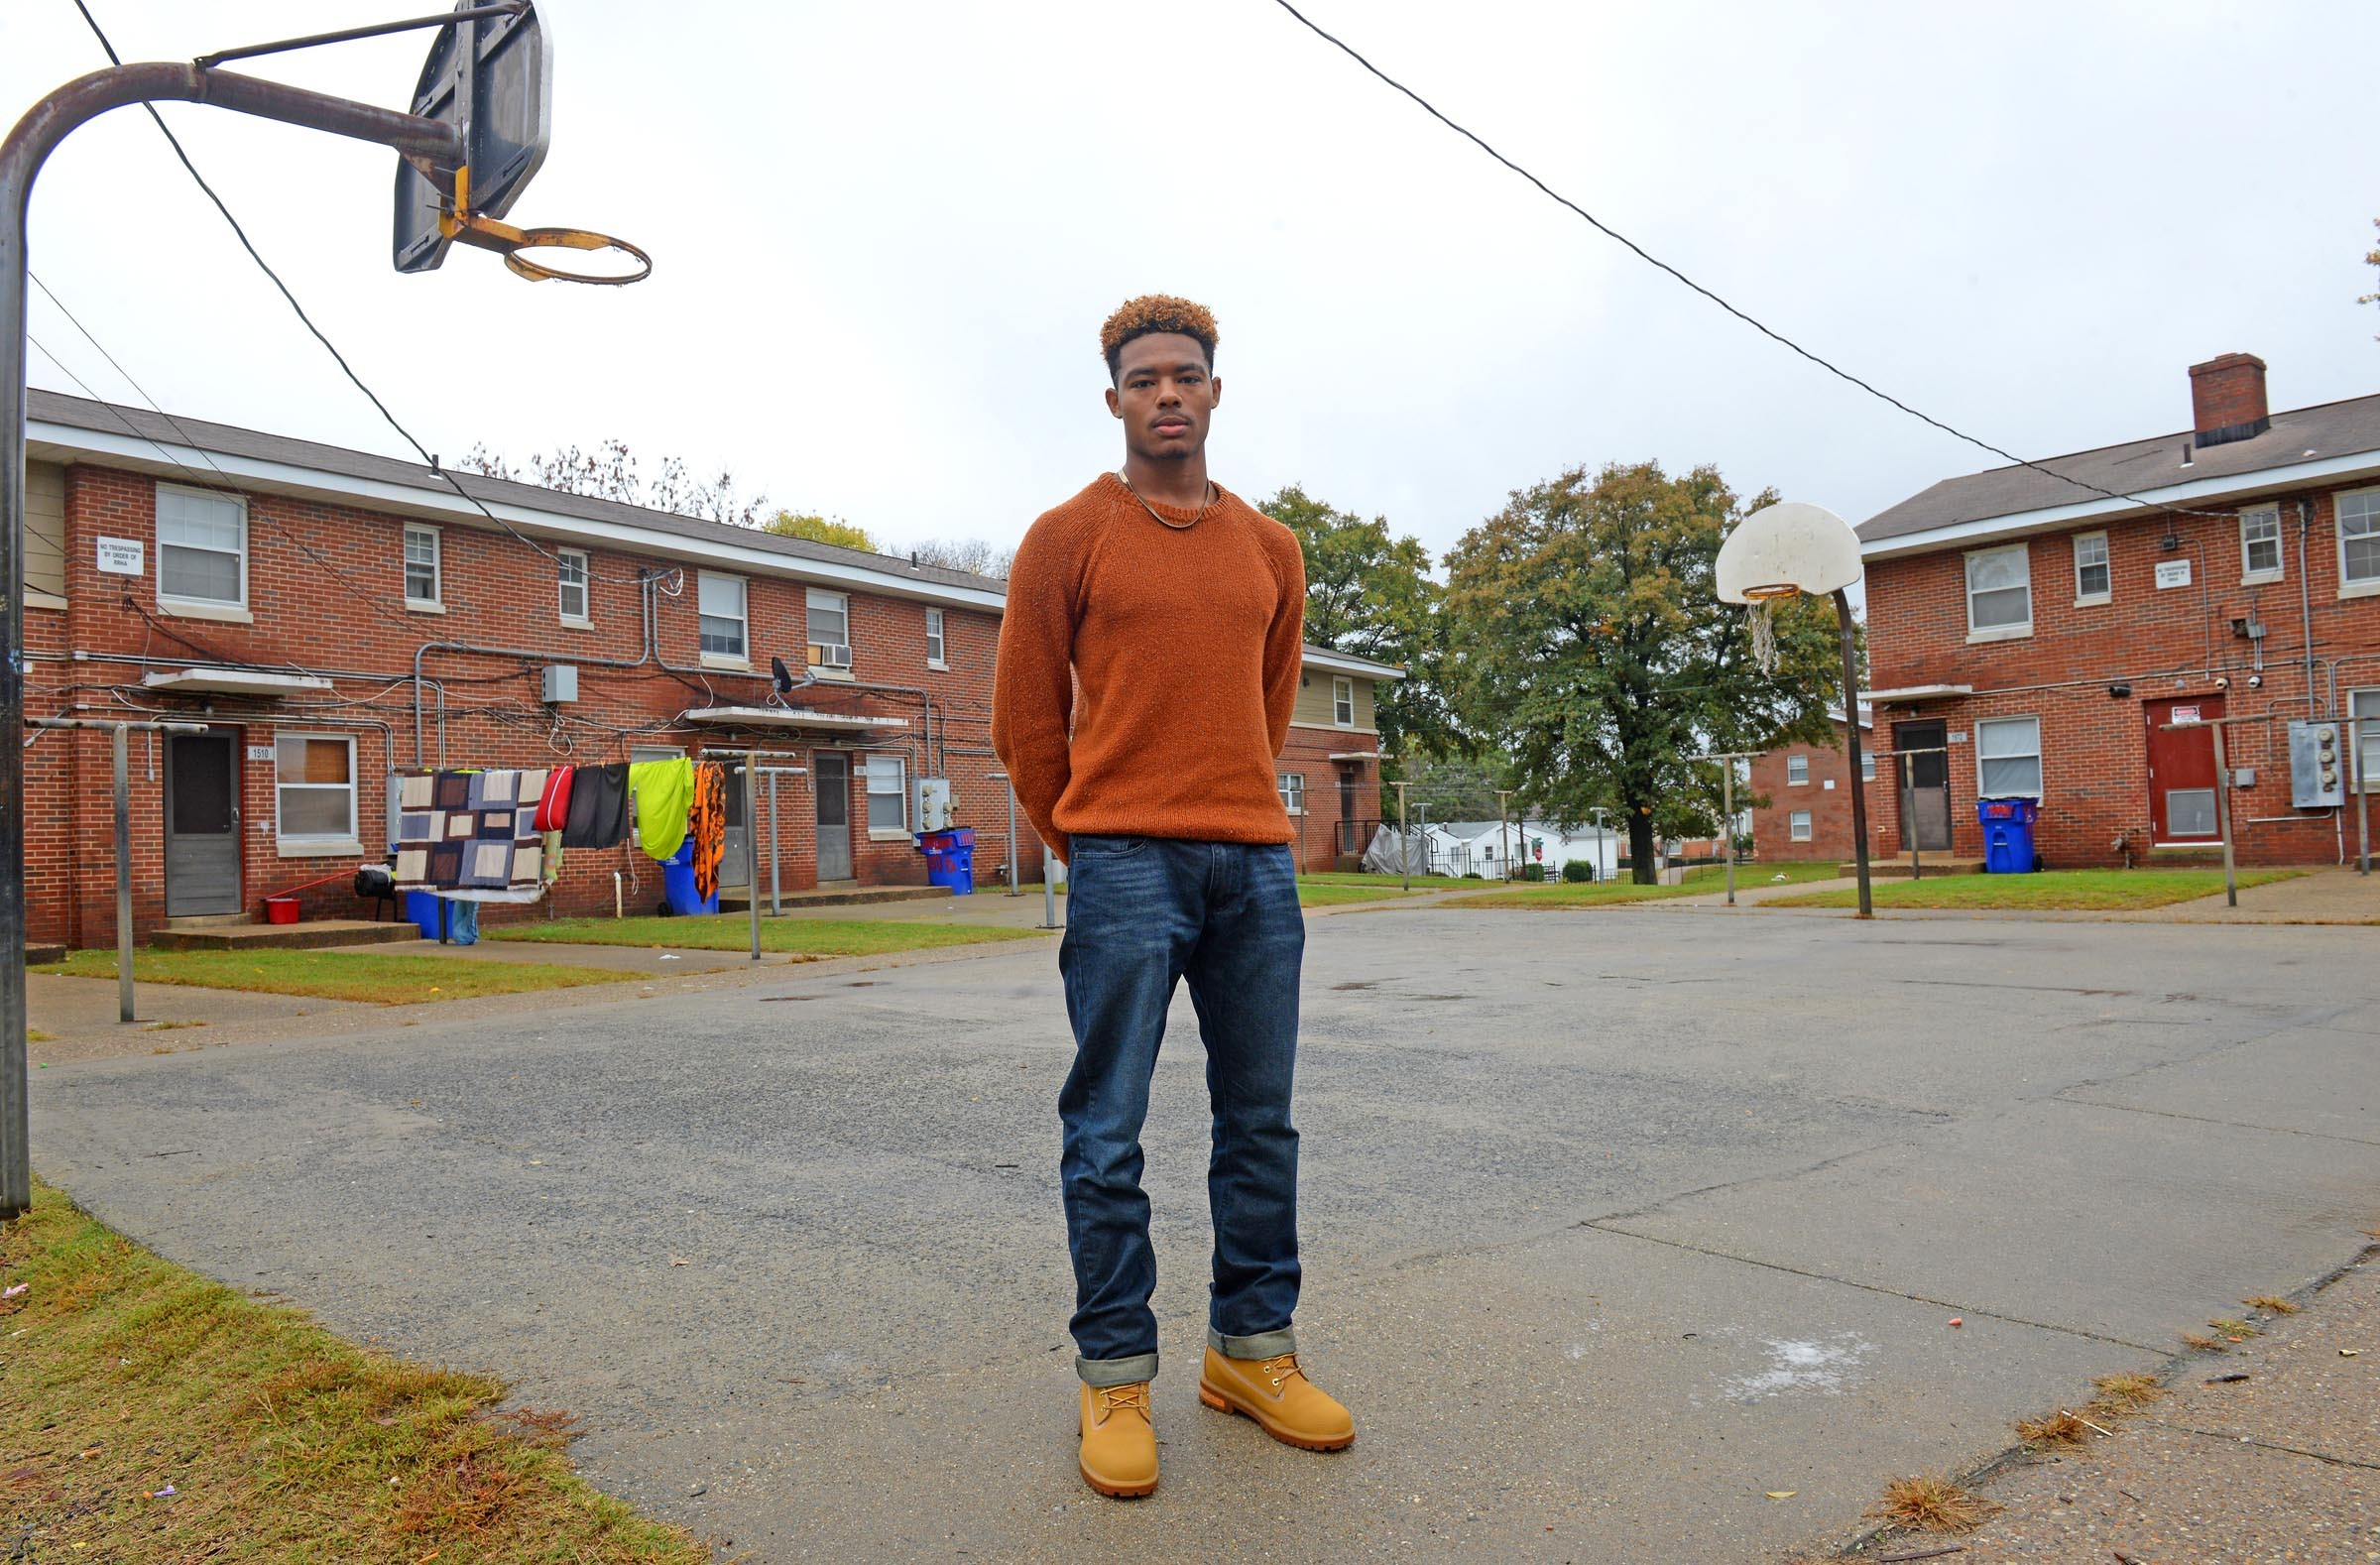 Dominique Crutchfield stands in the basketball court where he joined his family for the vigil of his late father, William Crutchfield. As the oldest of six siblings, the 18-year-old says he now stands in for his father in many ways. He hopes to attend a Virginia college. - SCOTT ELMQUIST